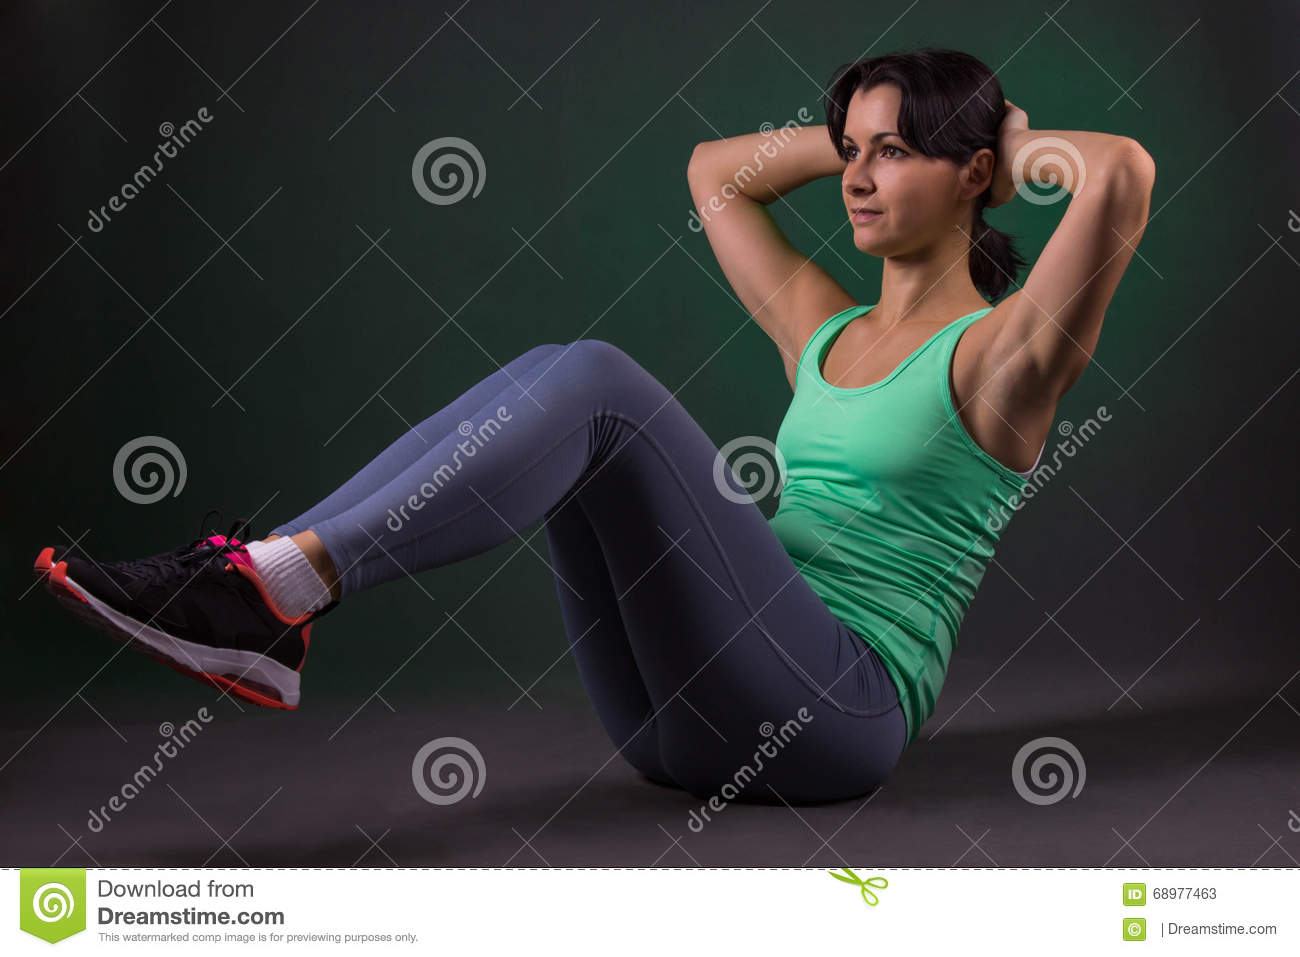 Beautiful sporty woman, fitness woman doing exercise on a dark background with green backlight